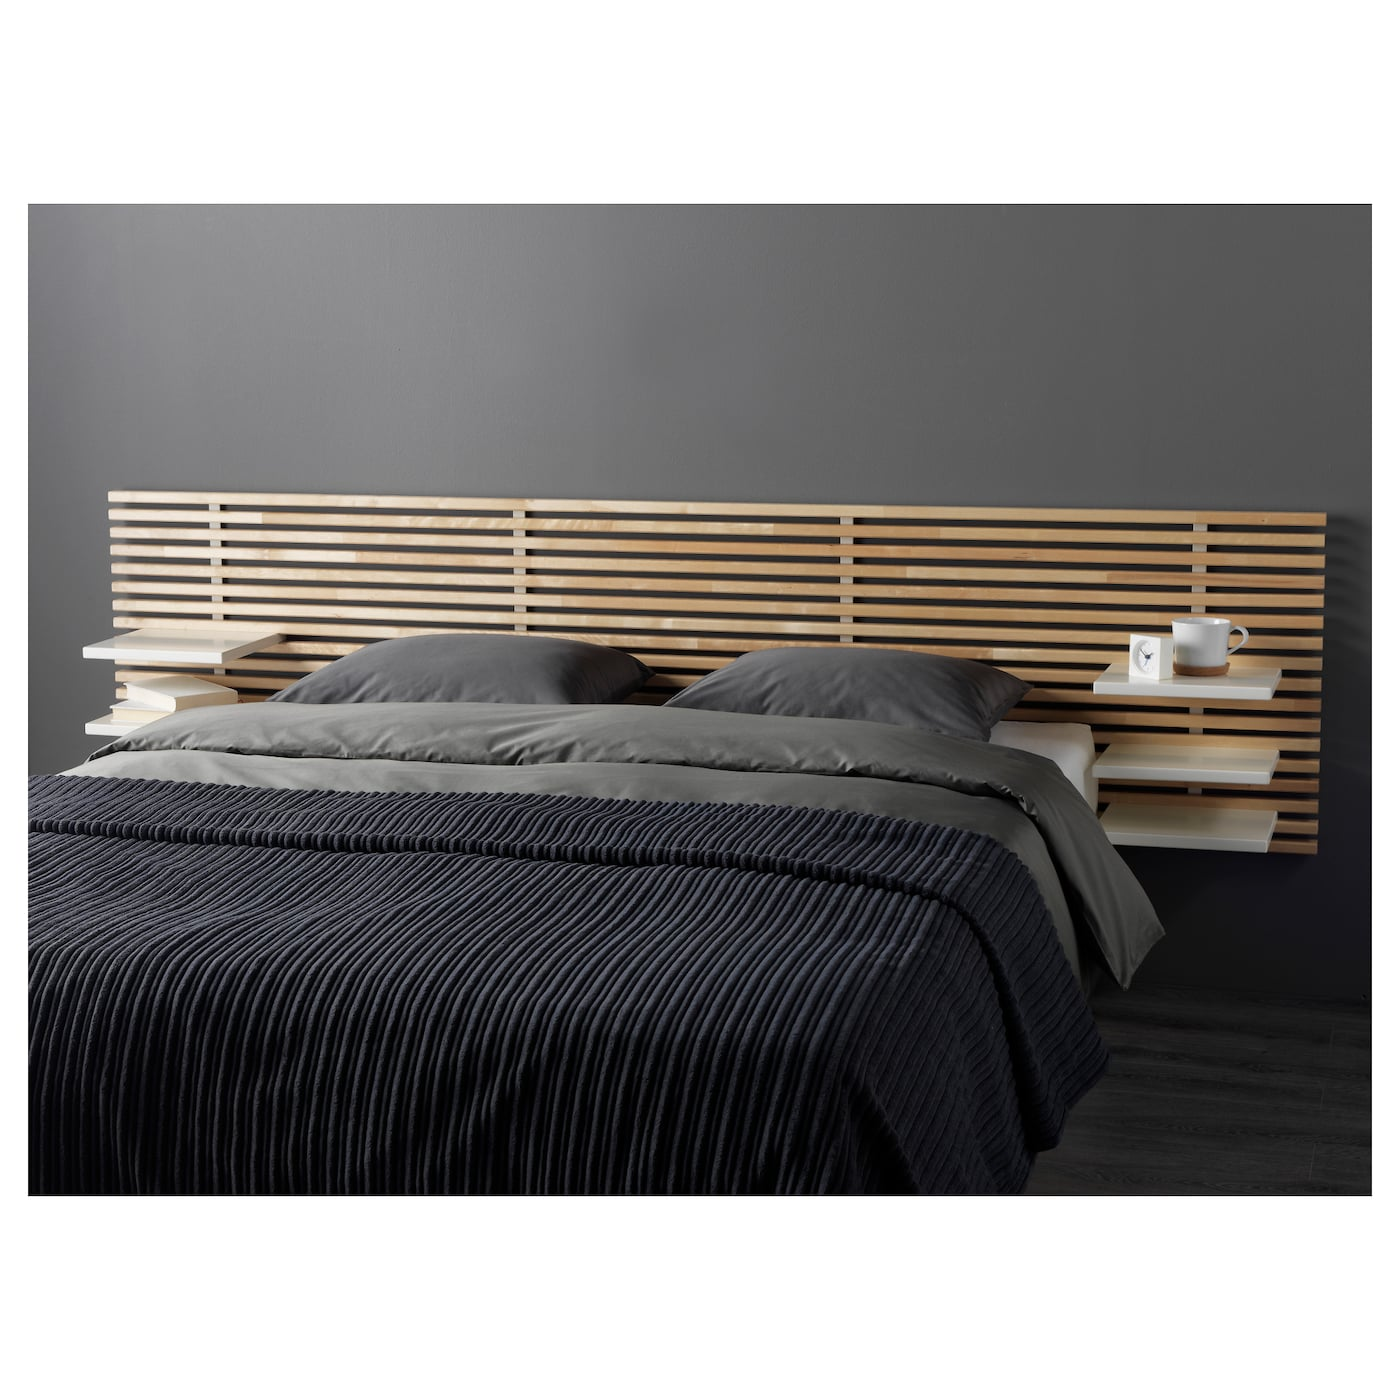 Mandal headboard birch white 240 cm ikea for Idees deco tete de lit